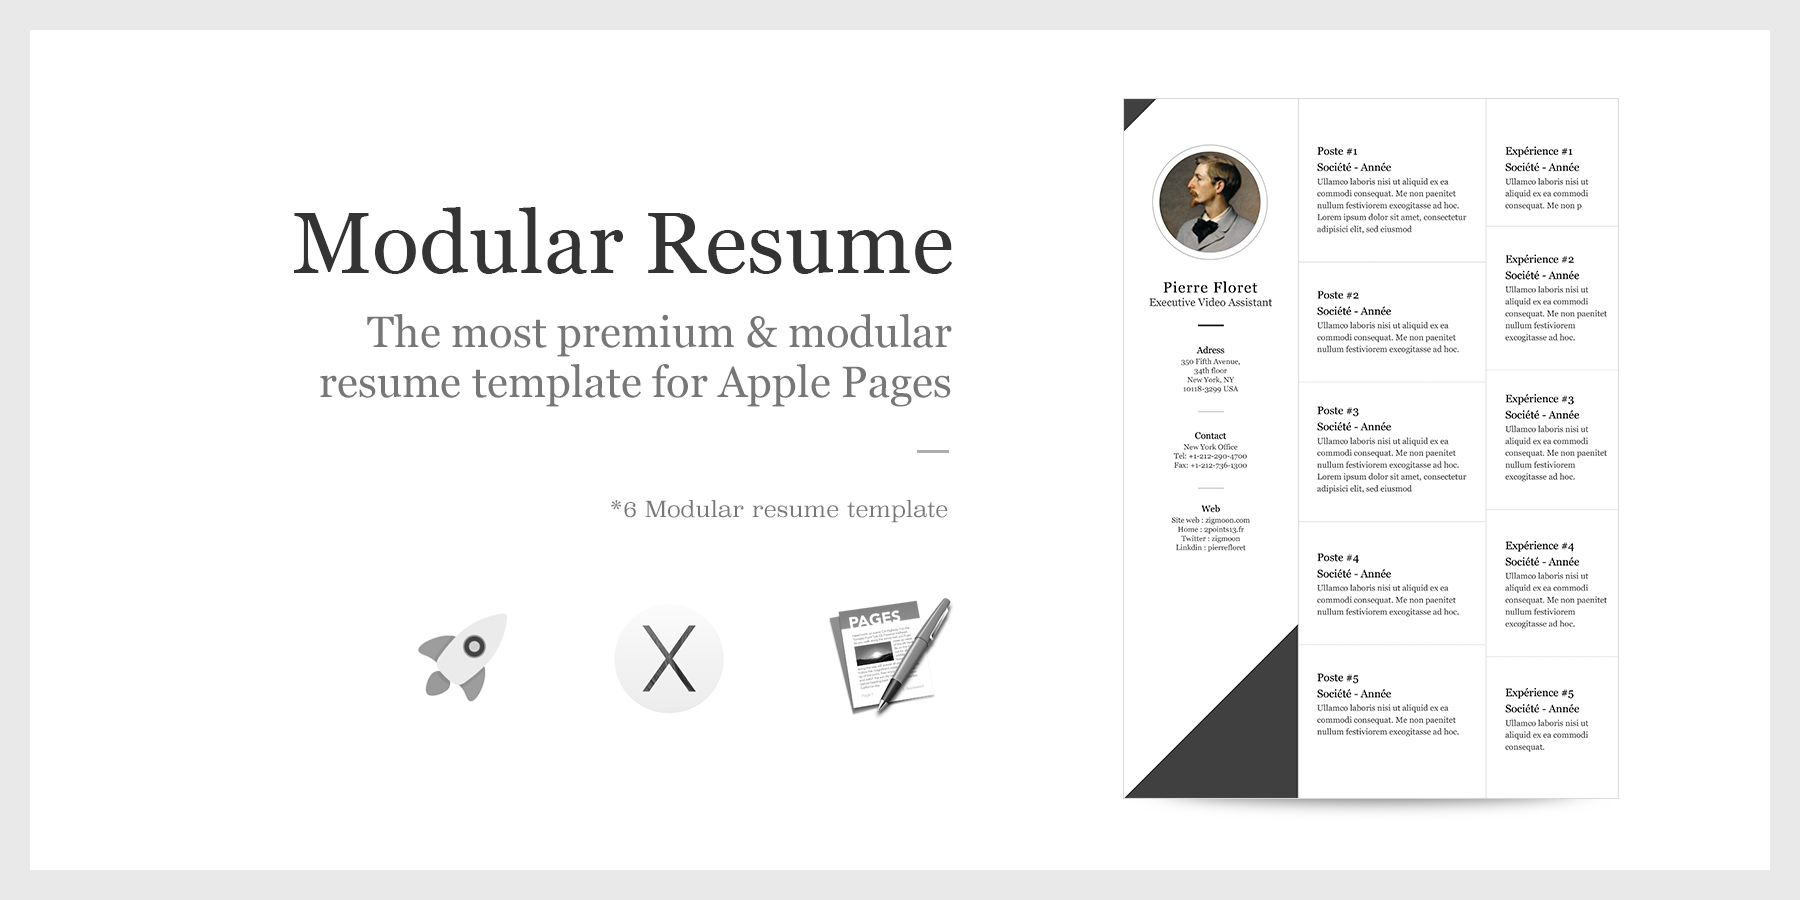 Resume Template Apple Pages   resume examples   Pinterest